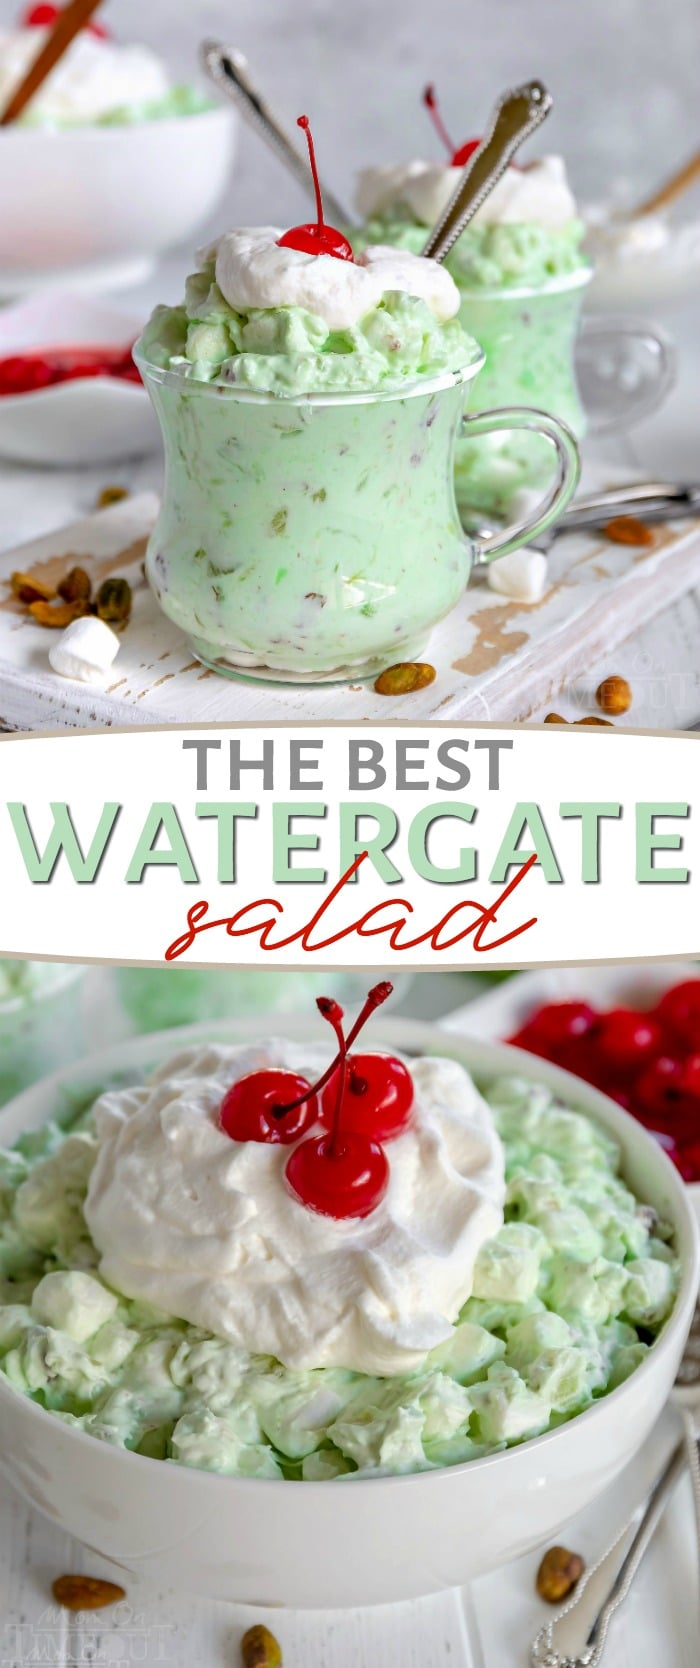 easy-watergate-salad-recipe-collage